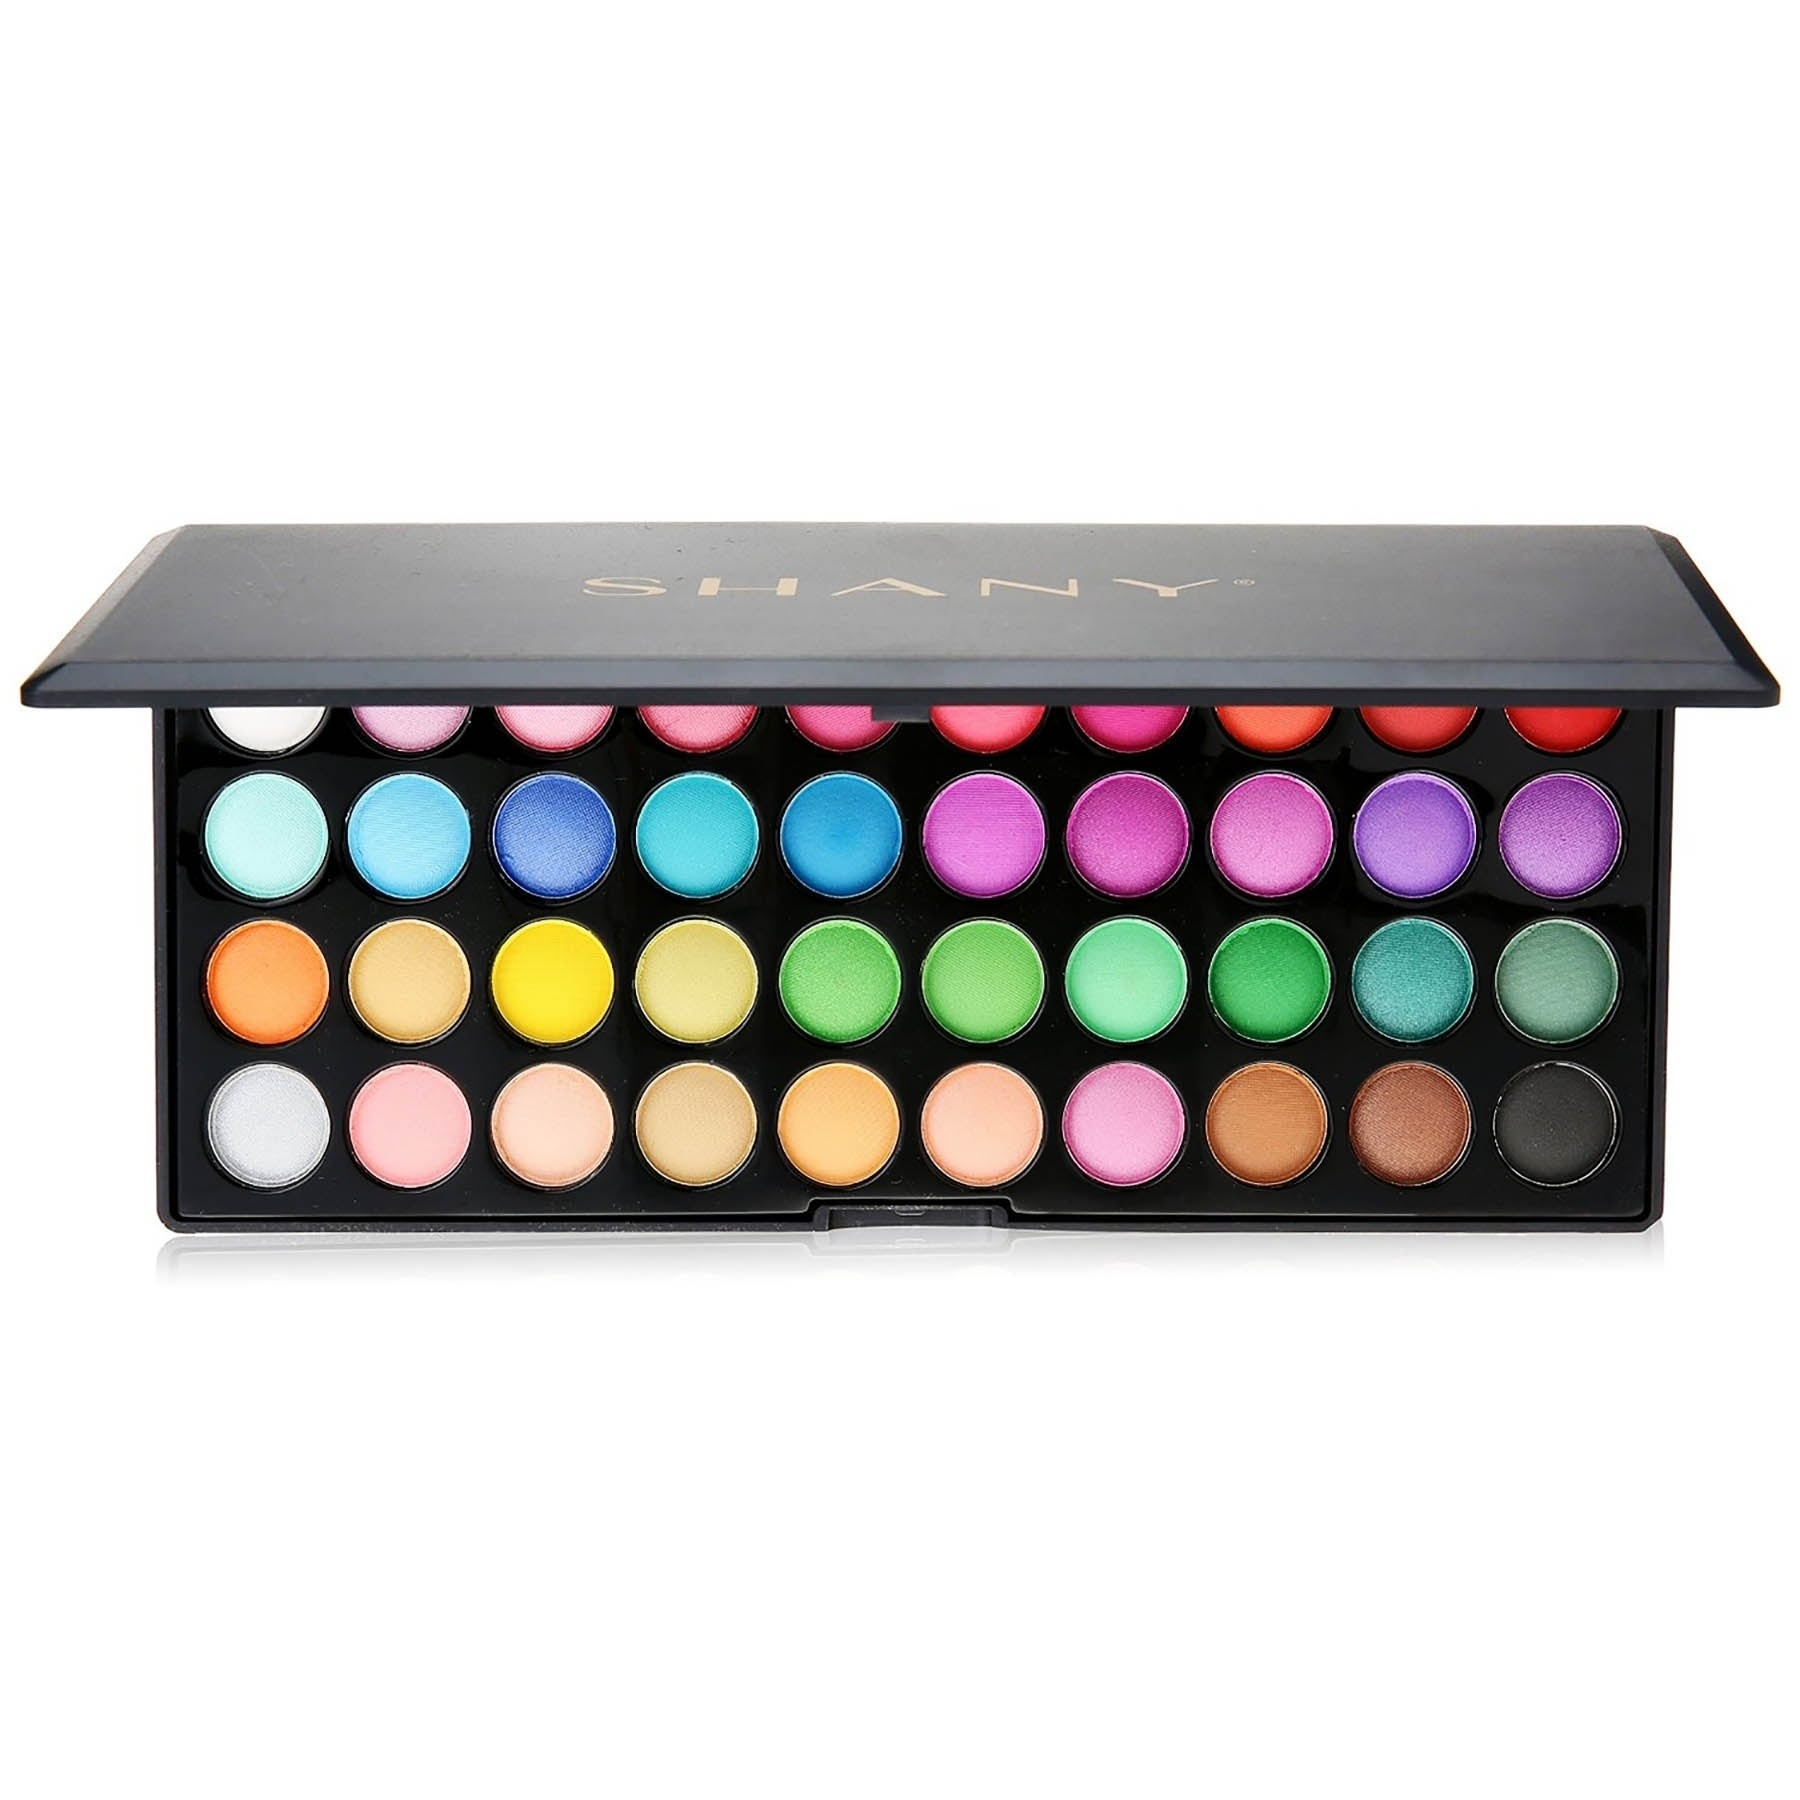 SHANY Cosmetics Shany Boutique 40-Color Eyeshadow Palette at Sears.com